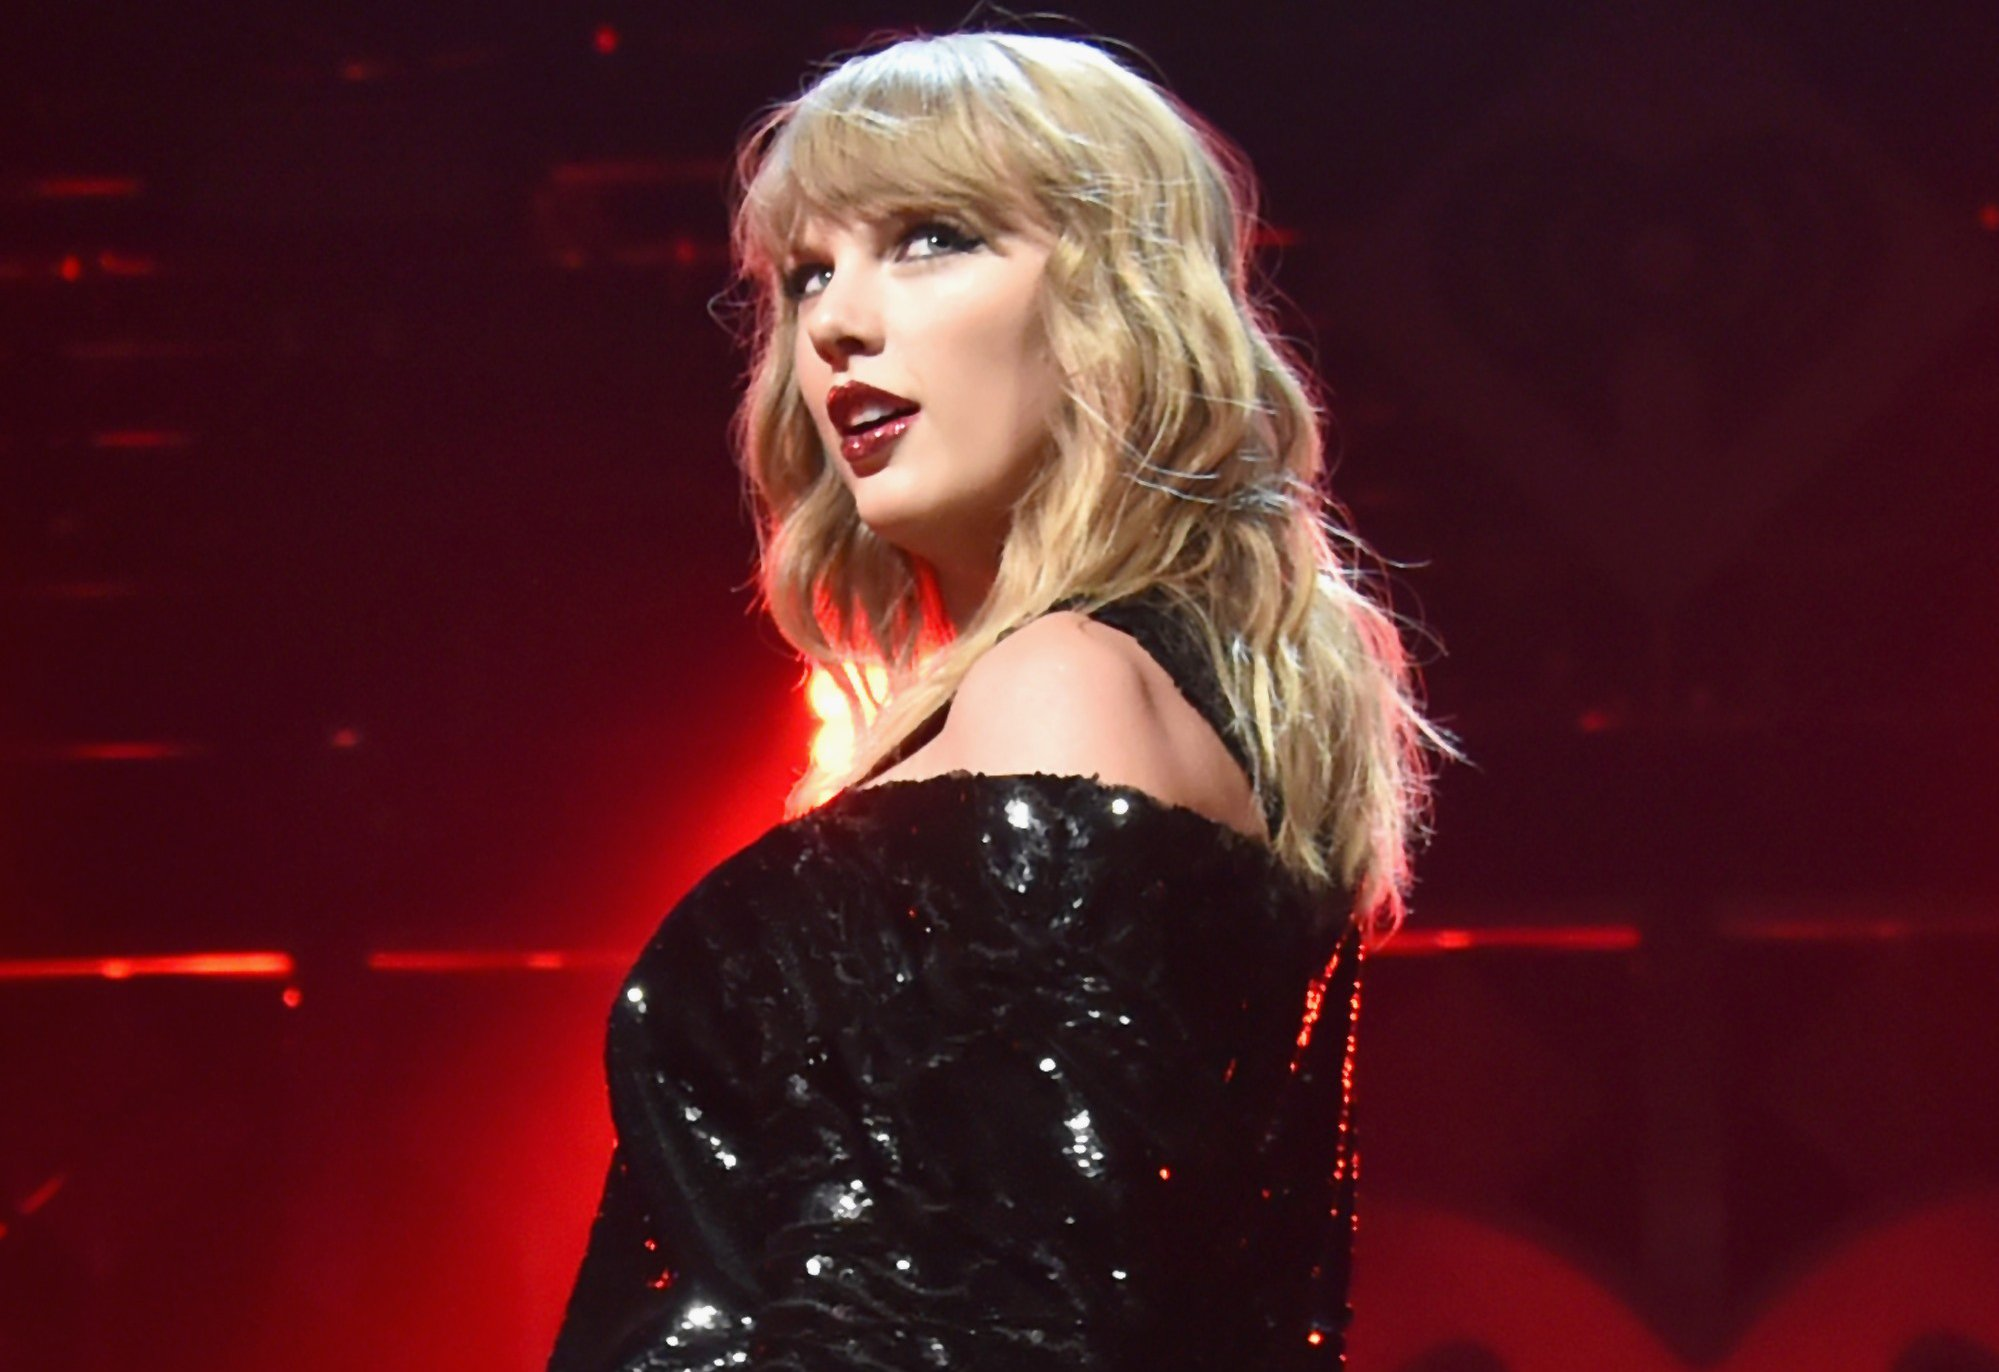 One Year After Her Court Win Taylor Swift Celebrates At Tampa Concert